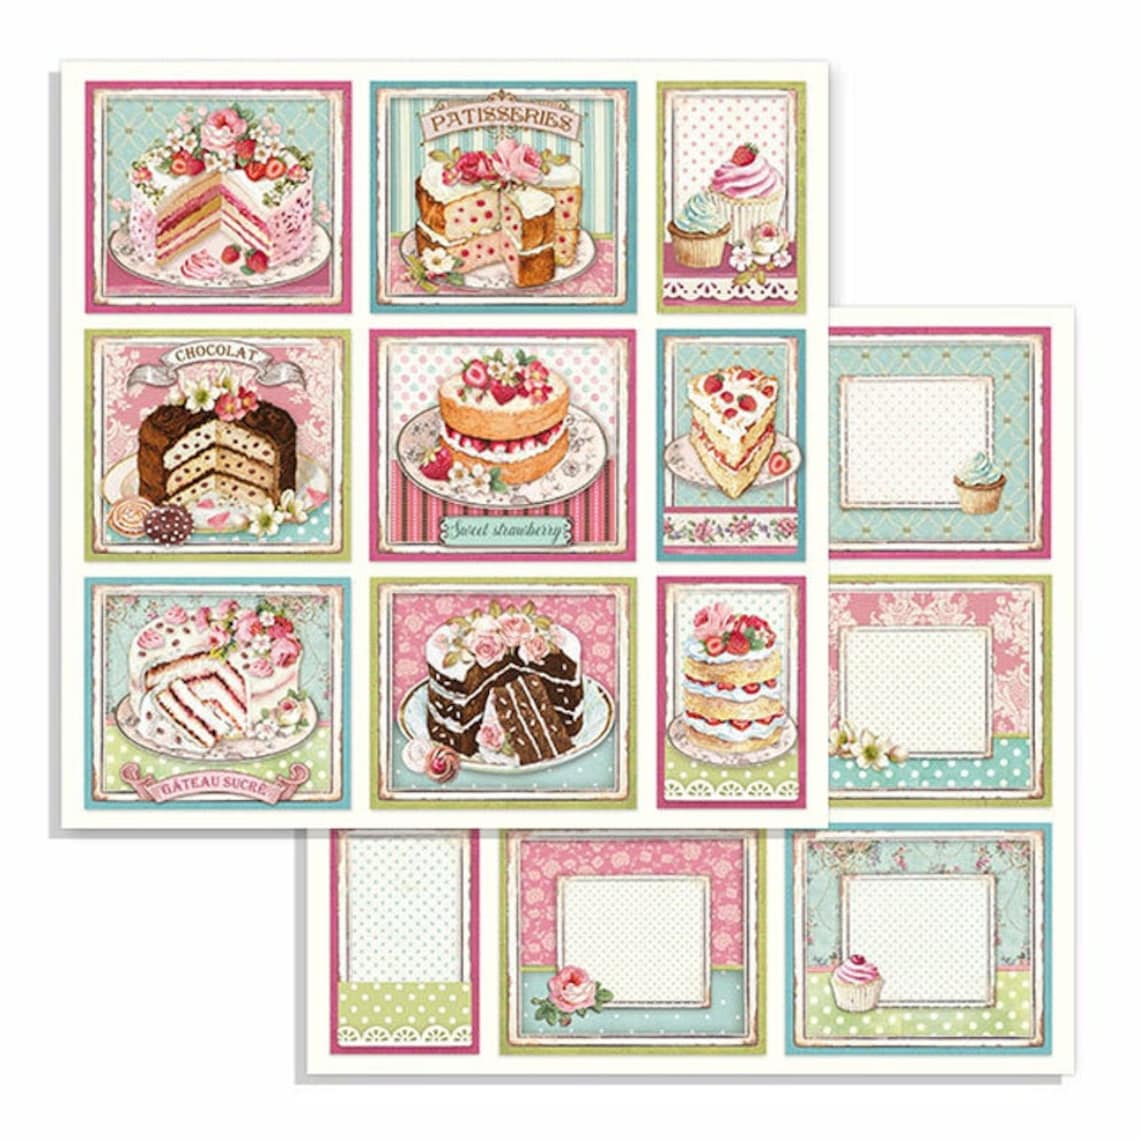 NEW Stamperia Sweety 12x12 Paper Pad Paper Kit Paper image 7